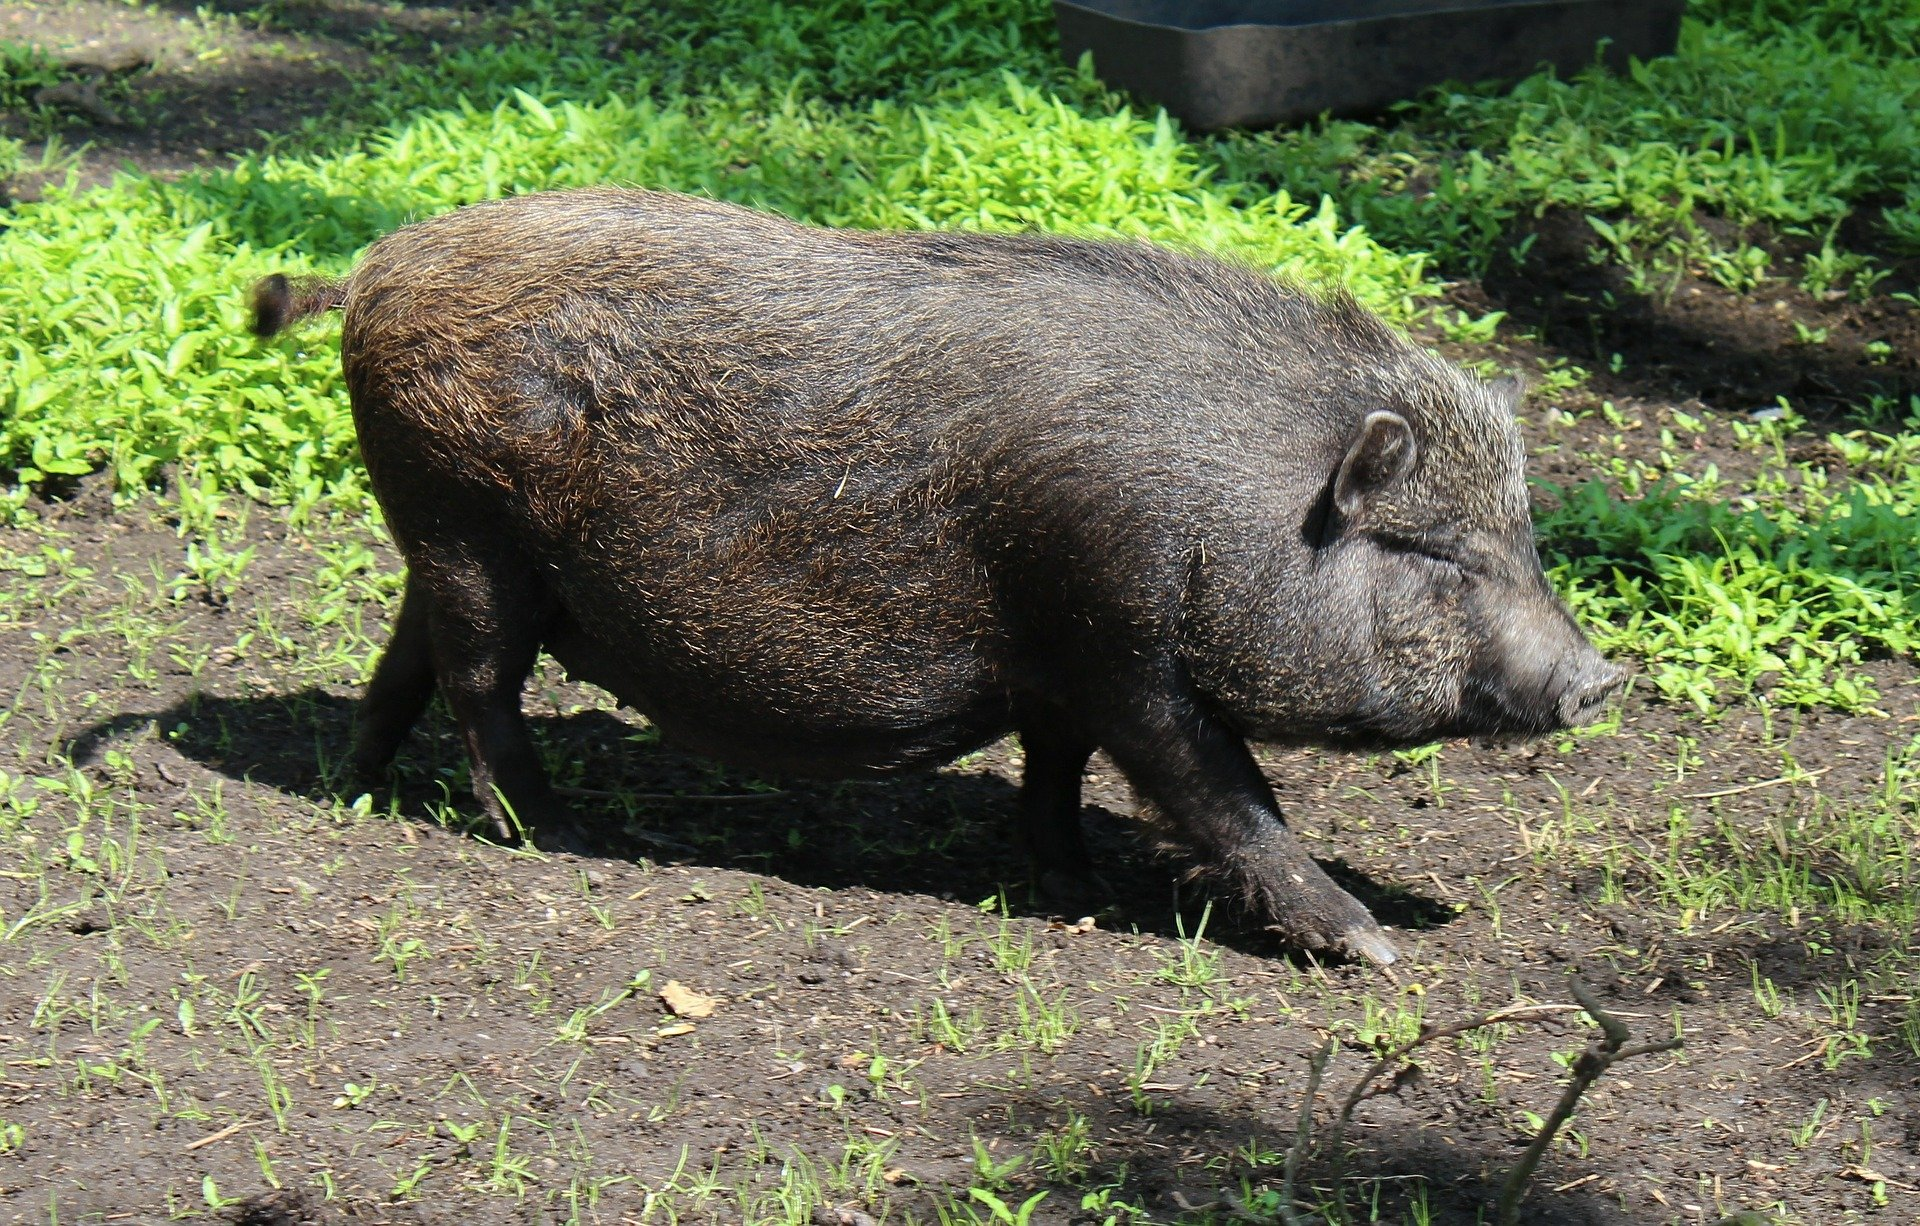 People Who Ignore Local Regulations May Find It Difficult To Seek Medical Care For Their Pig Friends Some Veterinarians Refuse Treat Them Because Theyre